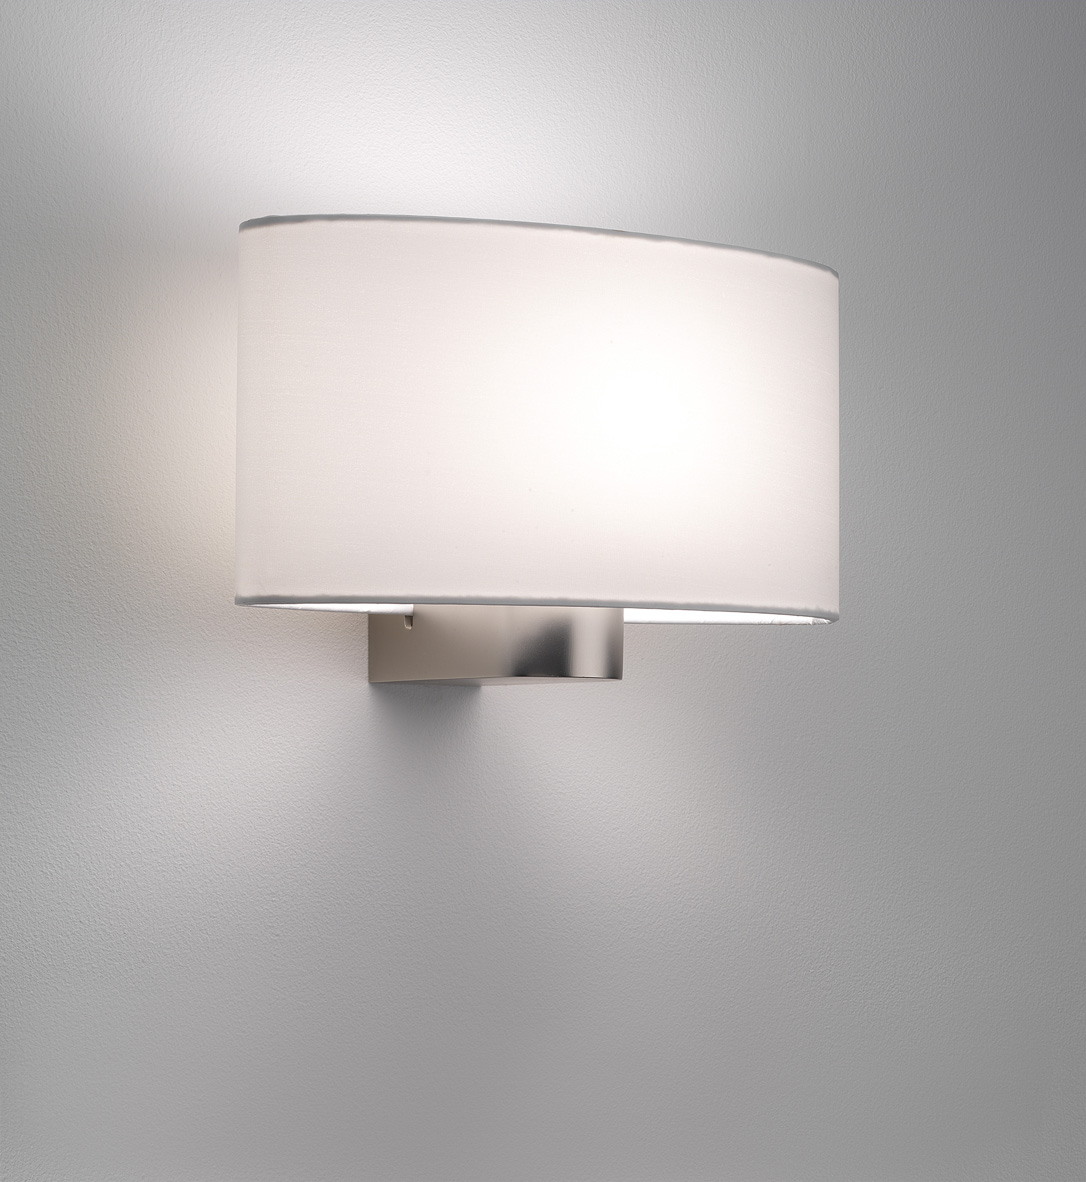 Lamp shades wall lights - your great choice for the ambience Warisan Lighting